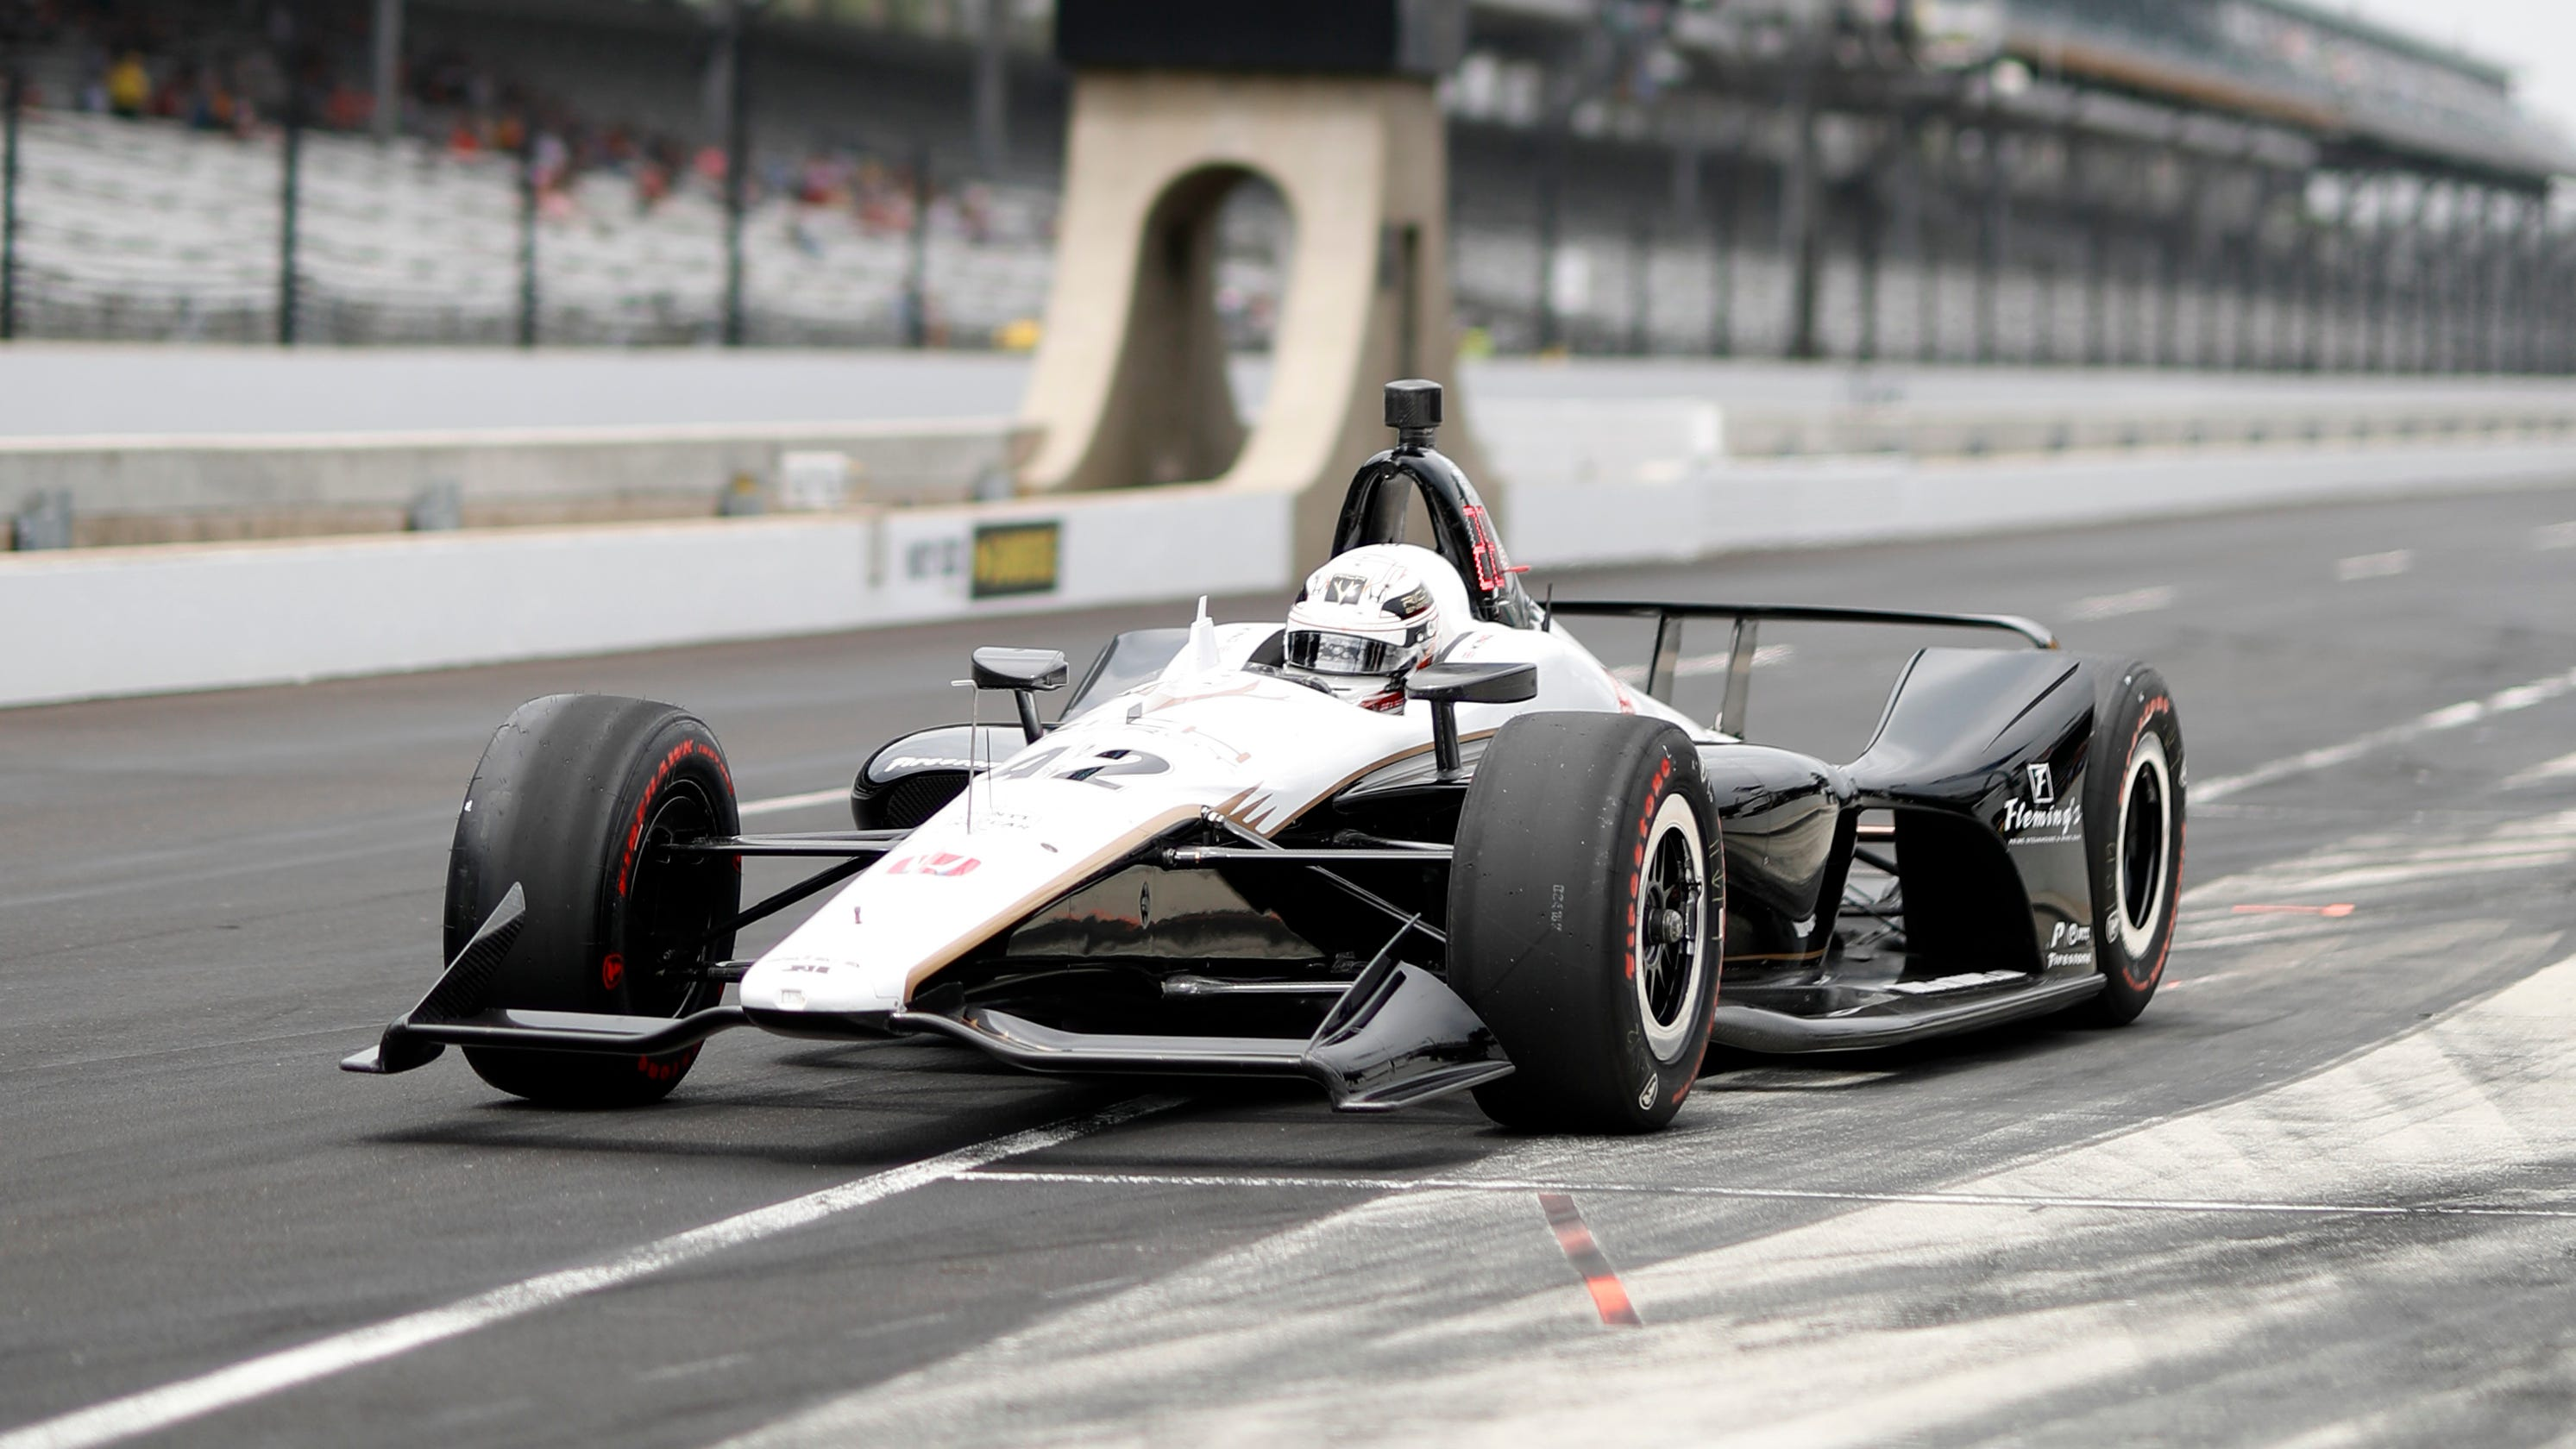 Crew member injured at Indy 500 when Jordan King's car makes contact on pit road